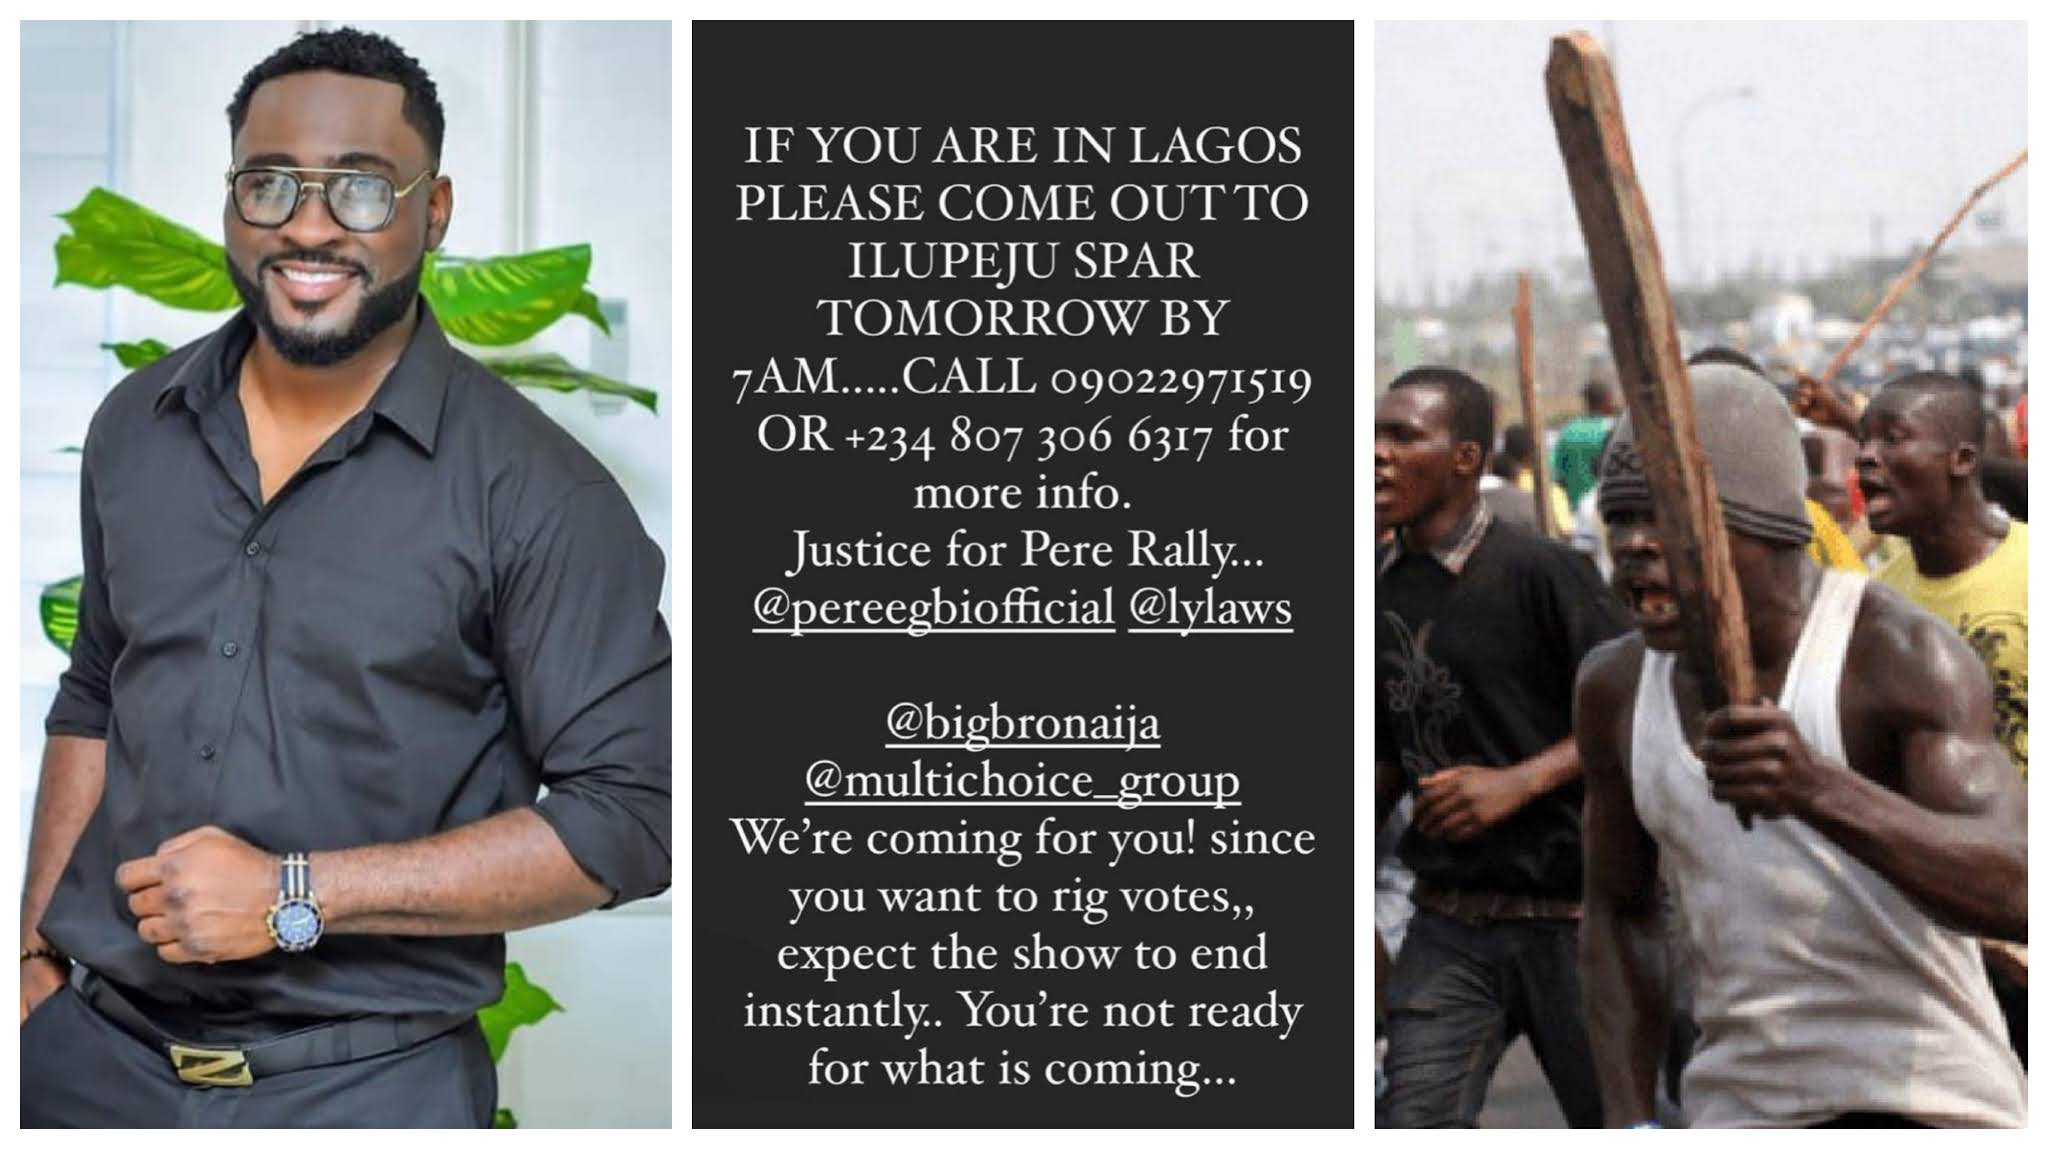 BBNaija: Pere's fans set to stage a protest in Lagos over Big Brother's twist, reveals time and venue